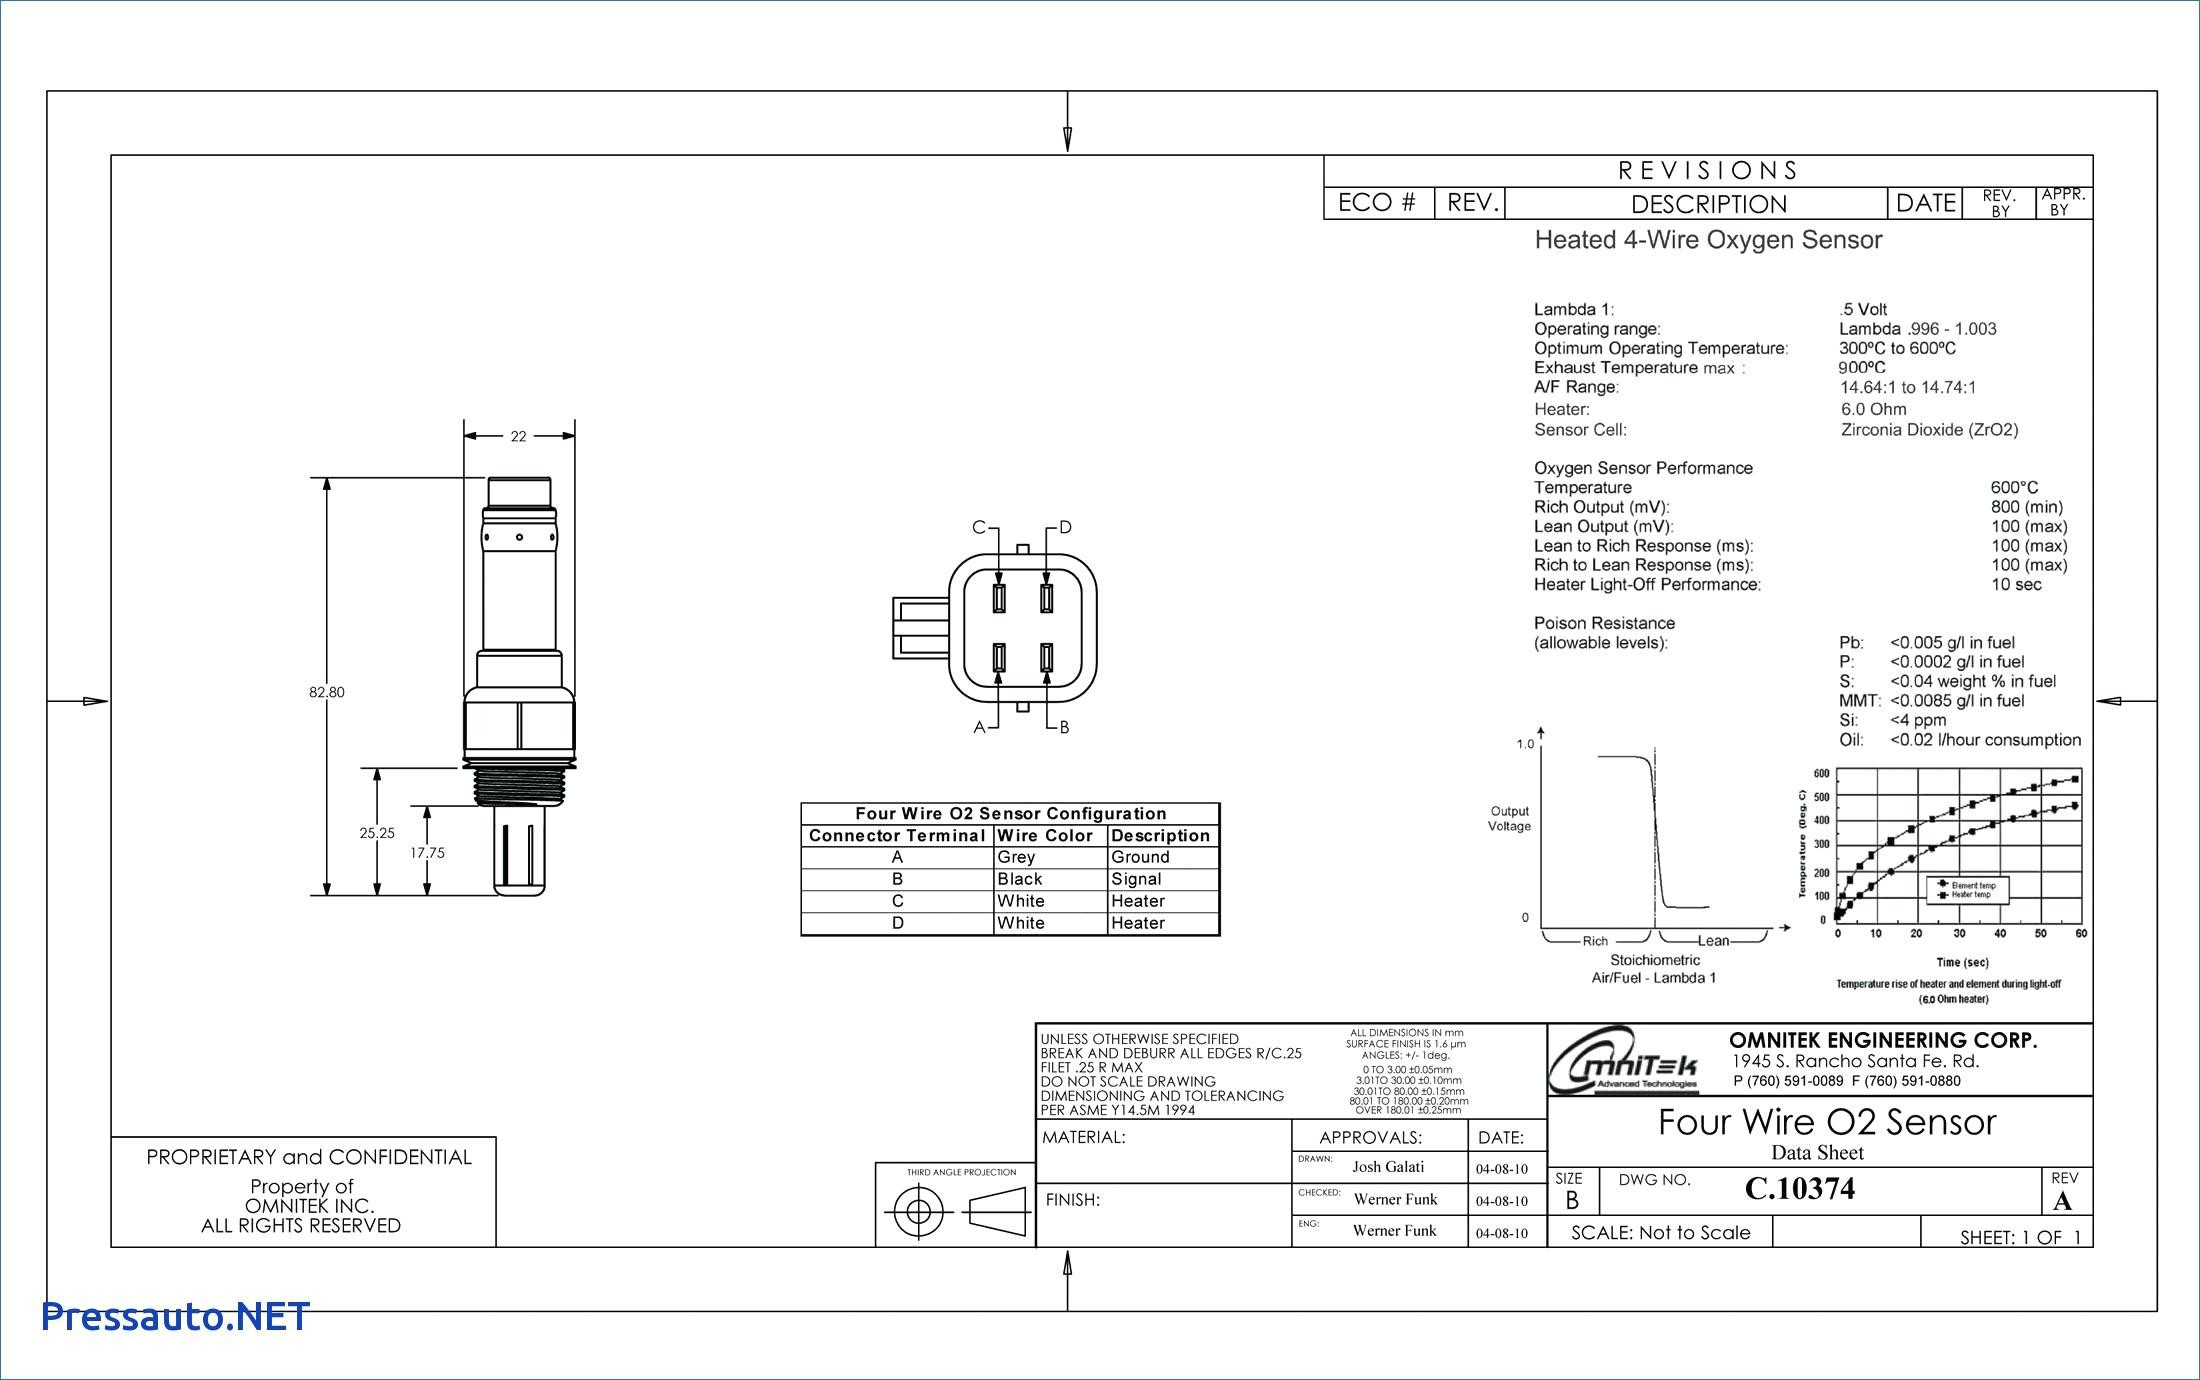 Subaru forester Engine Diagram Subaru 2 5 Engine Diagram Subaru O2 Sensor Wiring Diagram Oxygen Of Subaru forester Engine Diagram